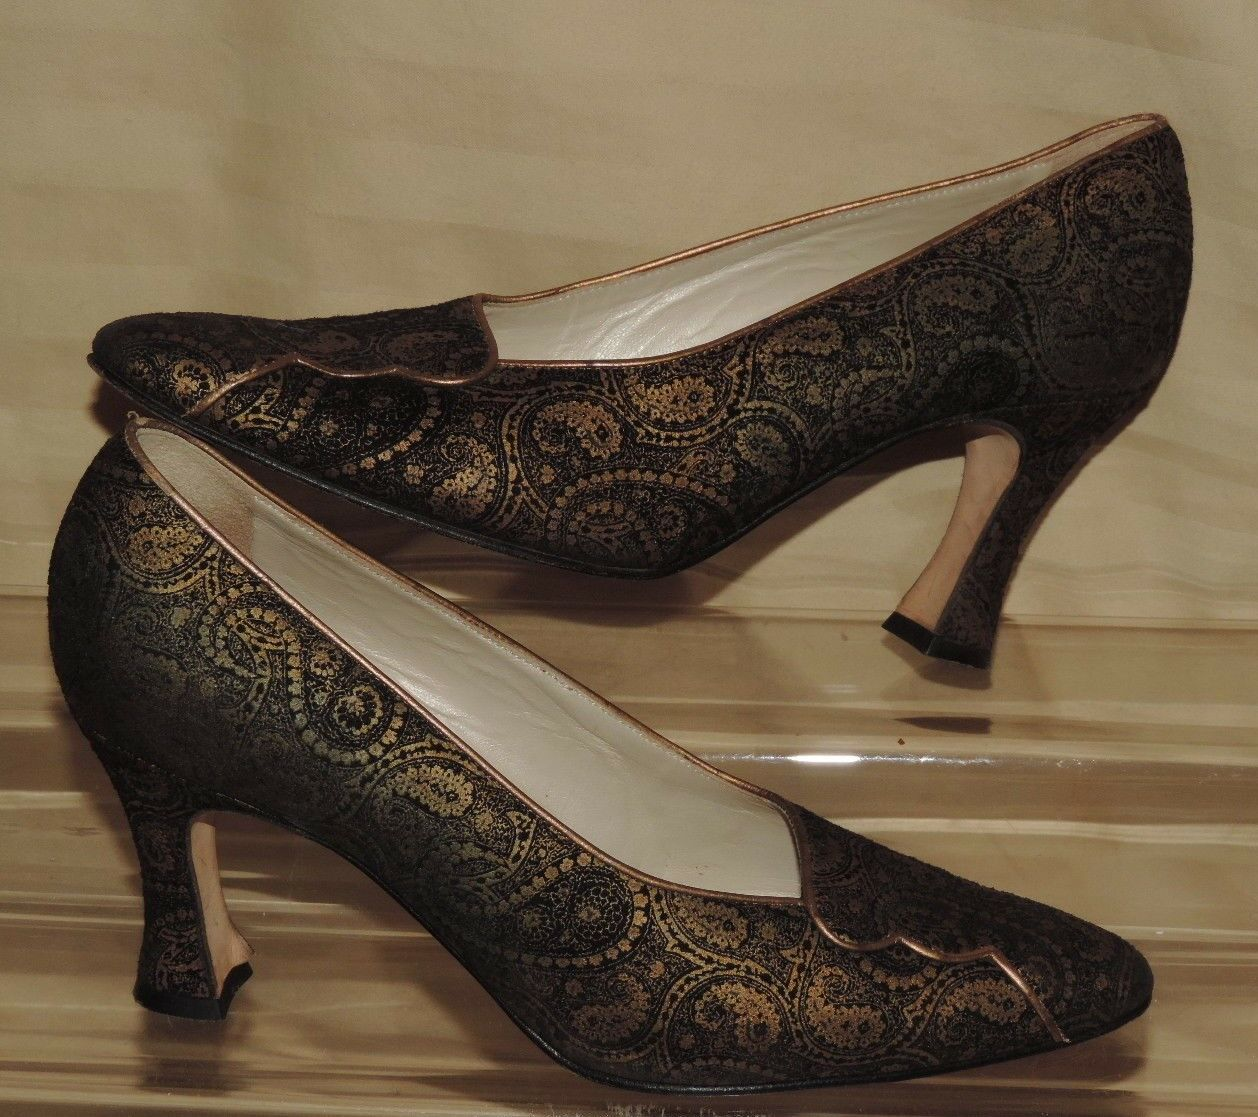 BALLY 7 M 'Gemini' Paisley Leather 3.5  High Heel Pump Made in